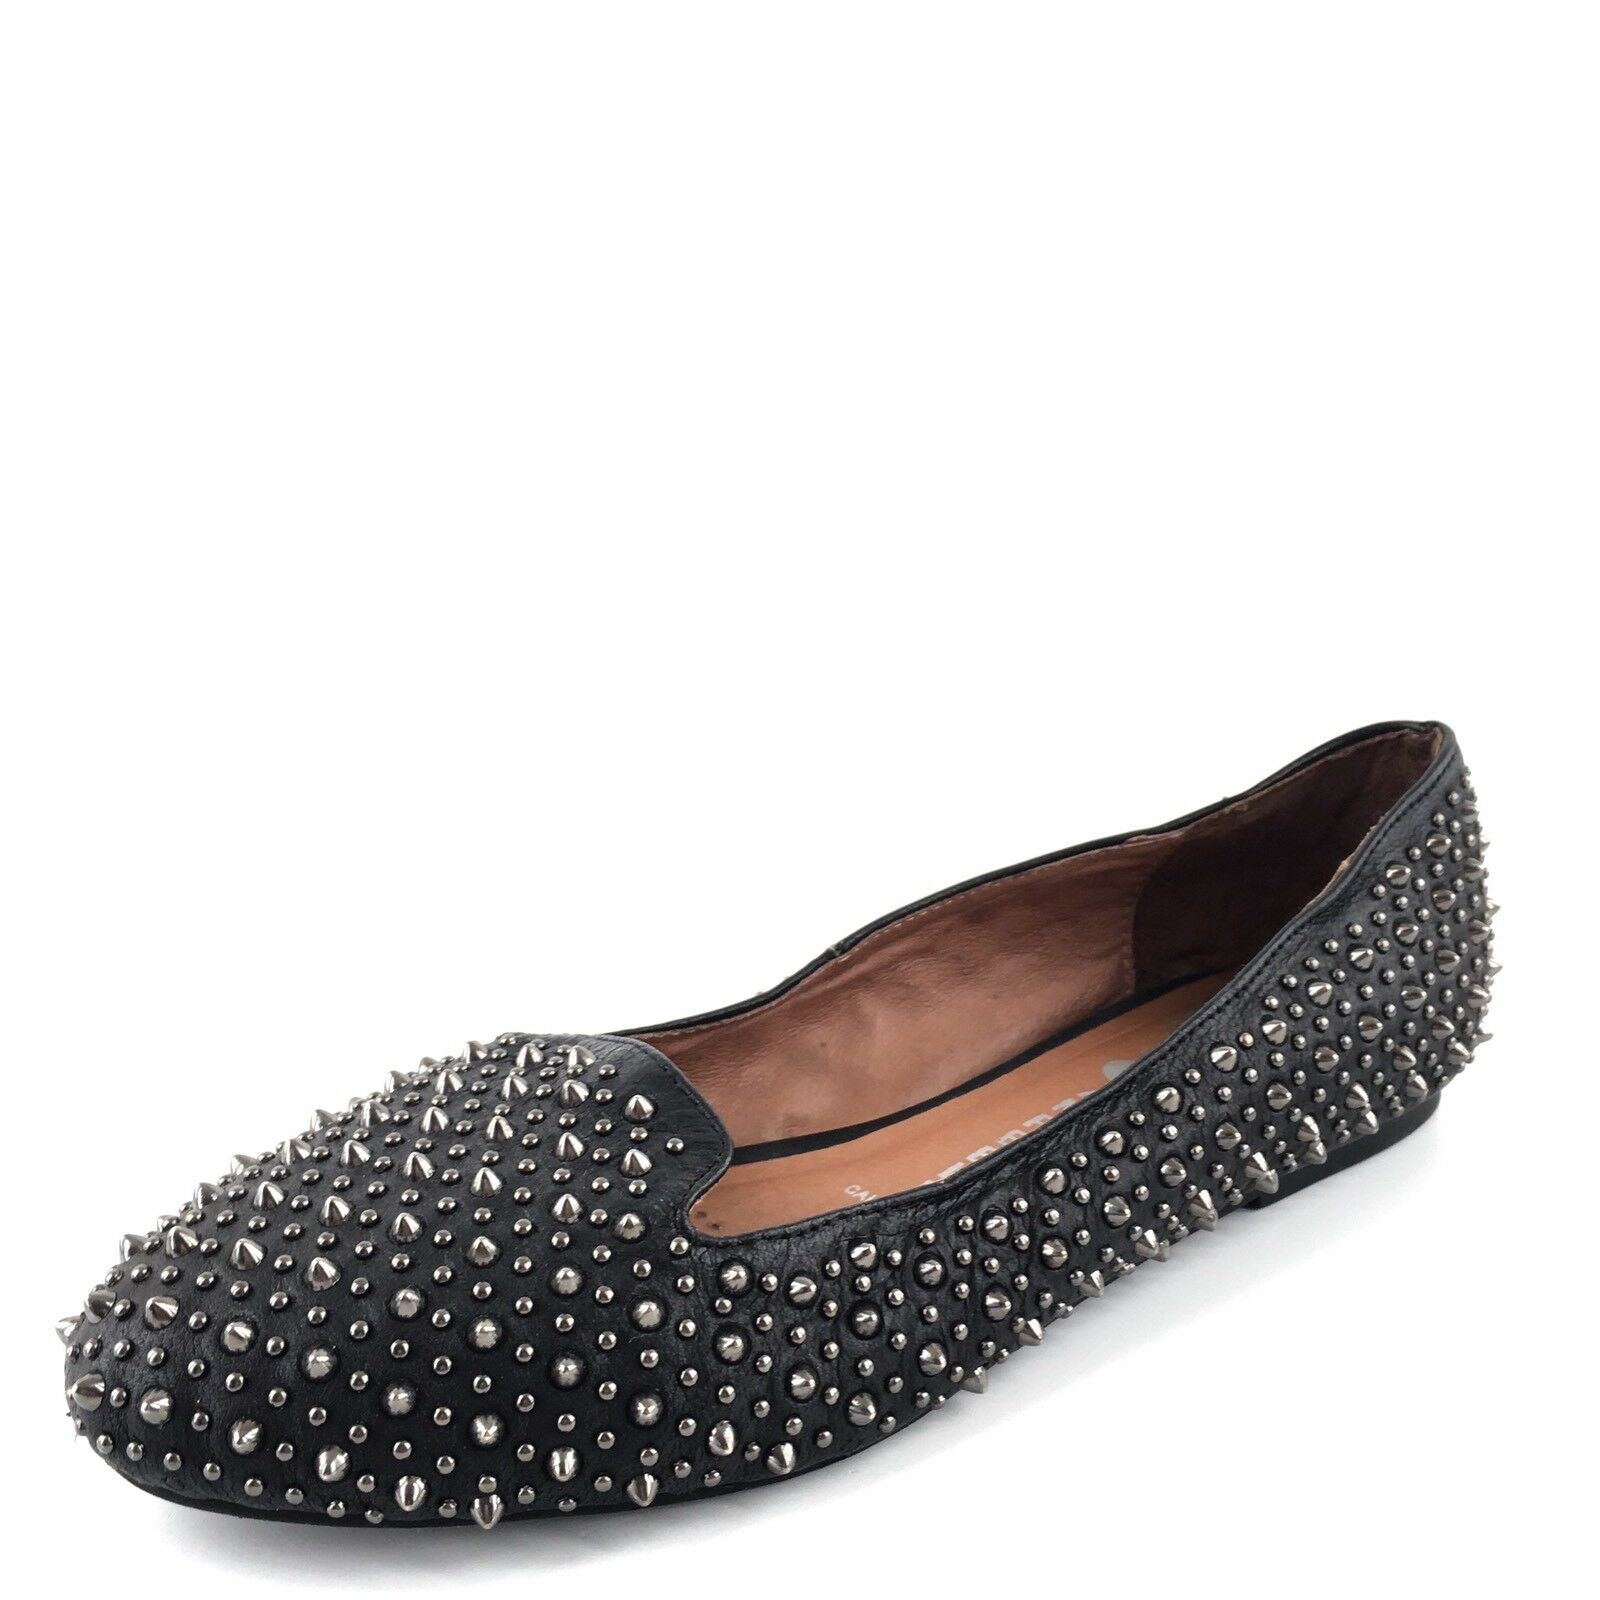 Jeffrey Campbell Martini Black Leather Studded Flats Women's Size 7 M